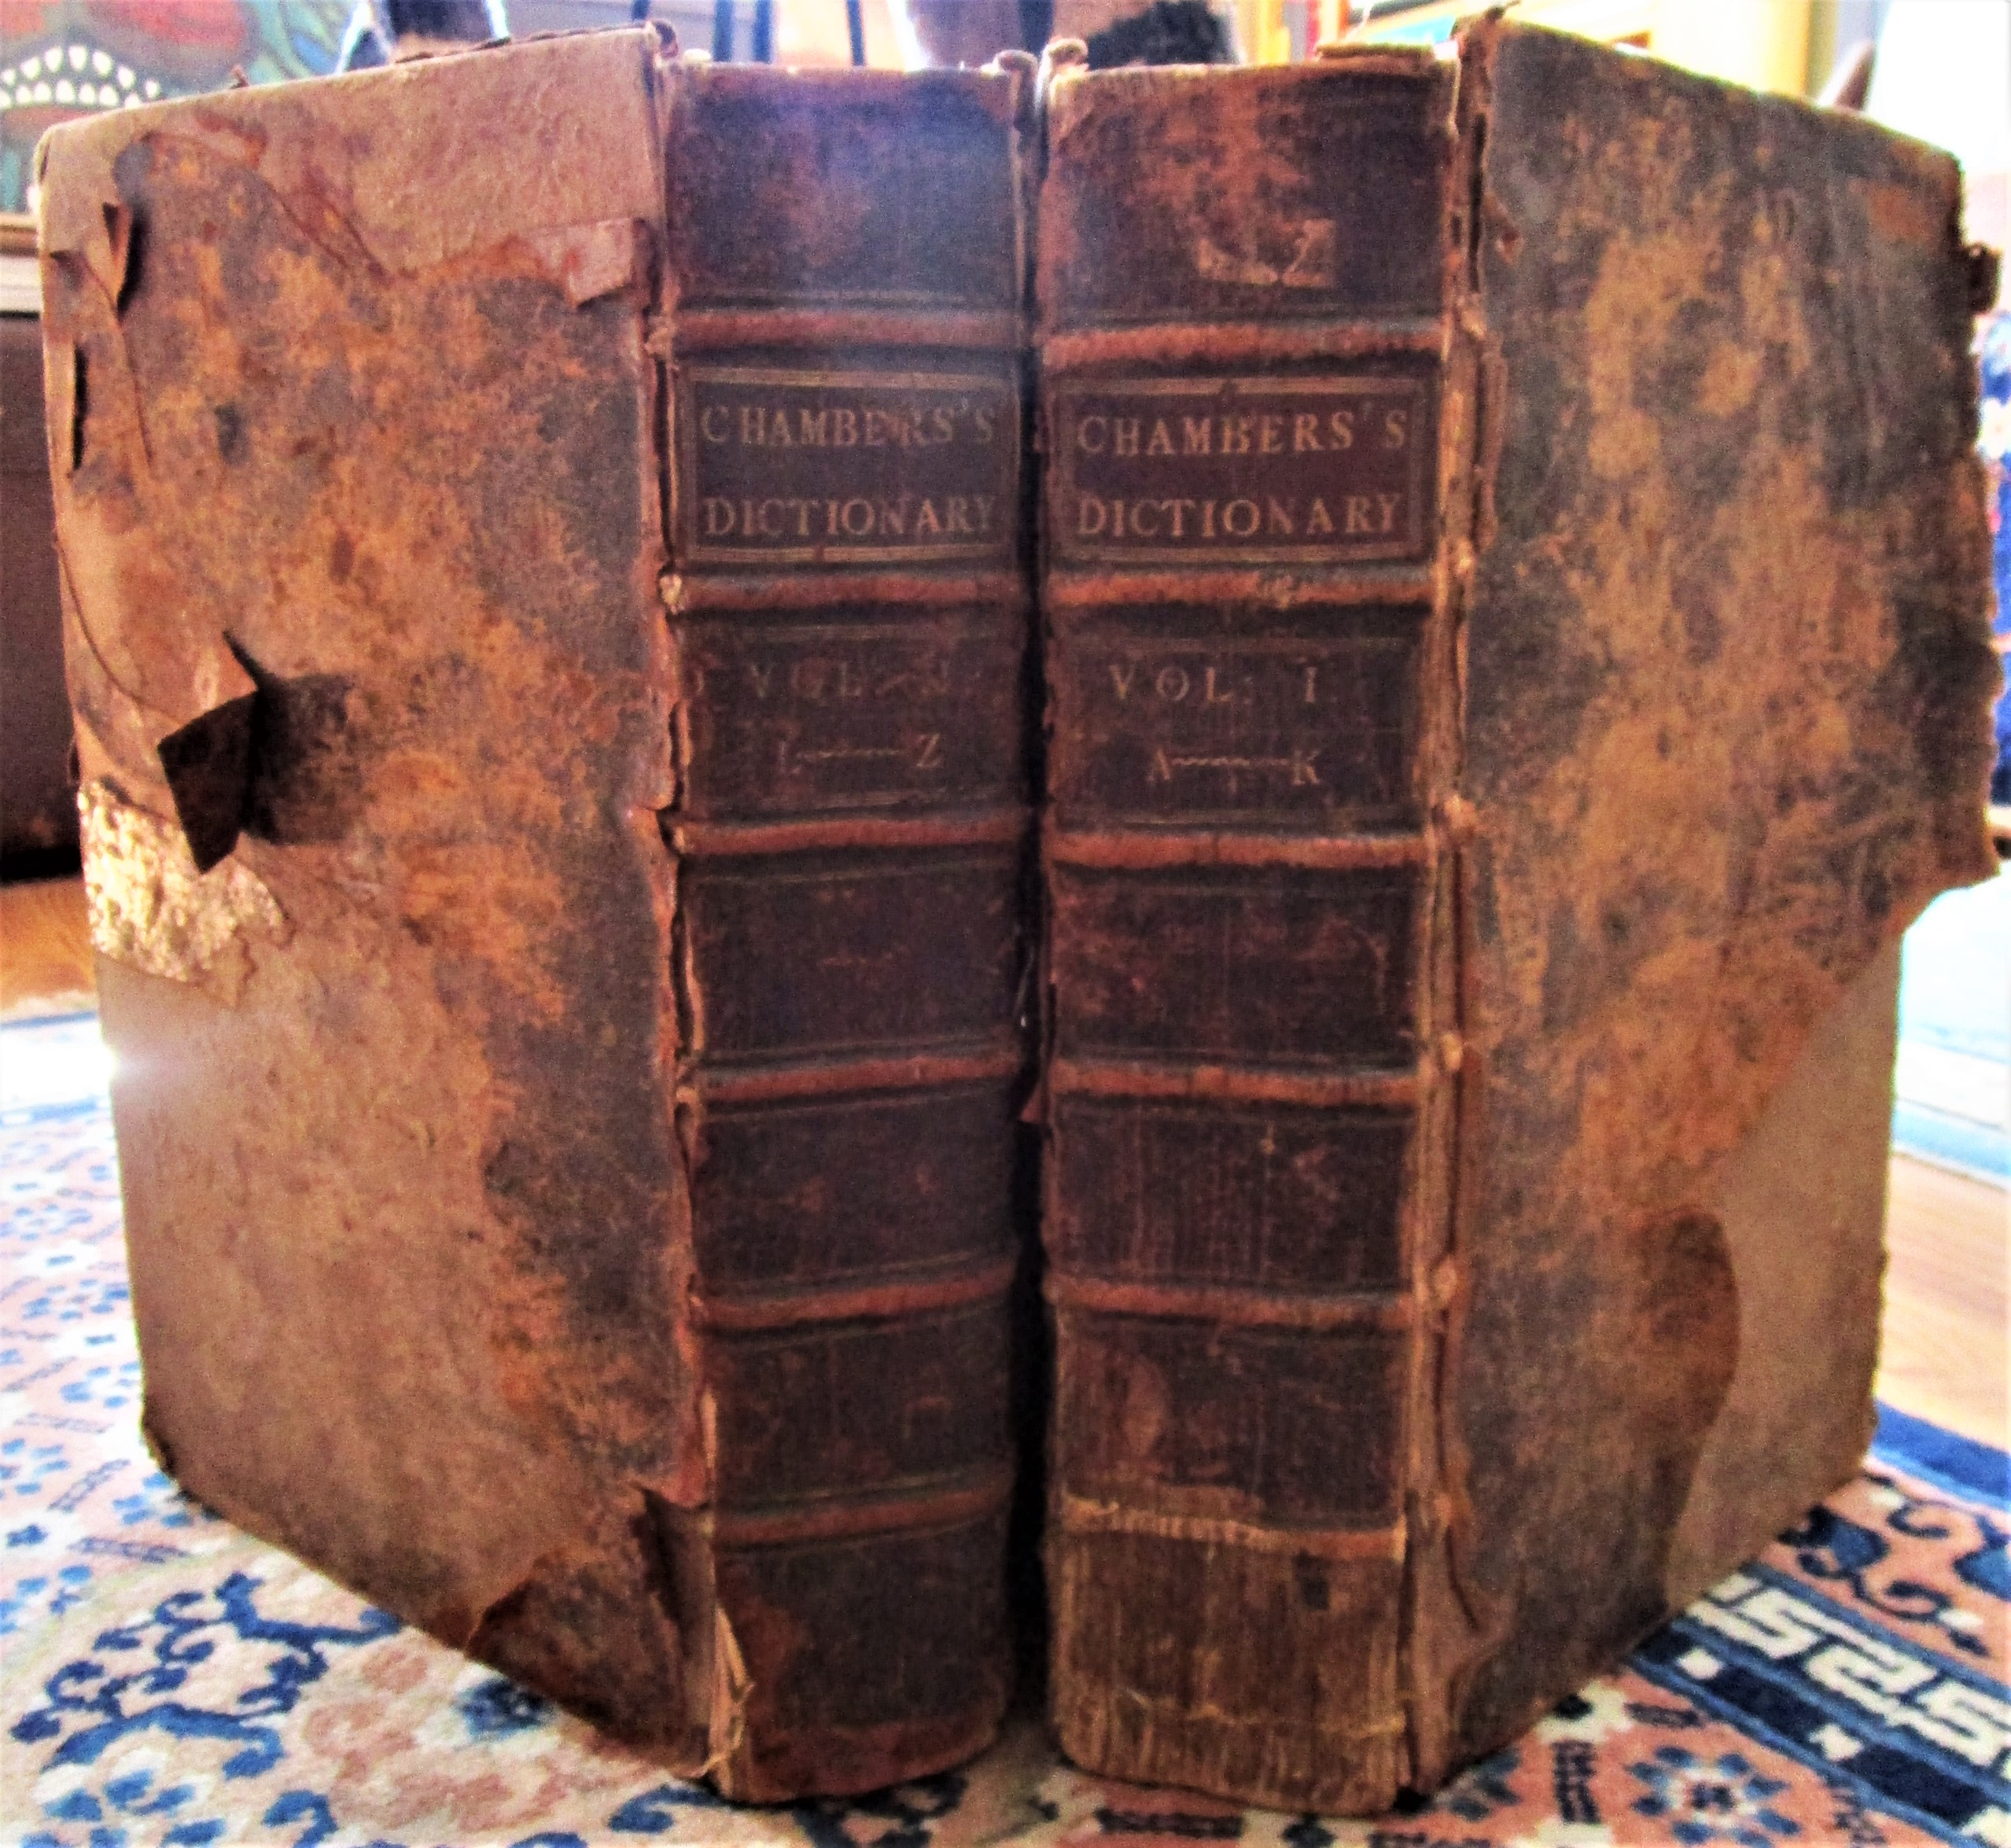 CYCLOPAEDIA OF ARTS AND SCIENCES, by E. Chambers - 1741 [2 Vols]